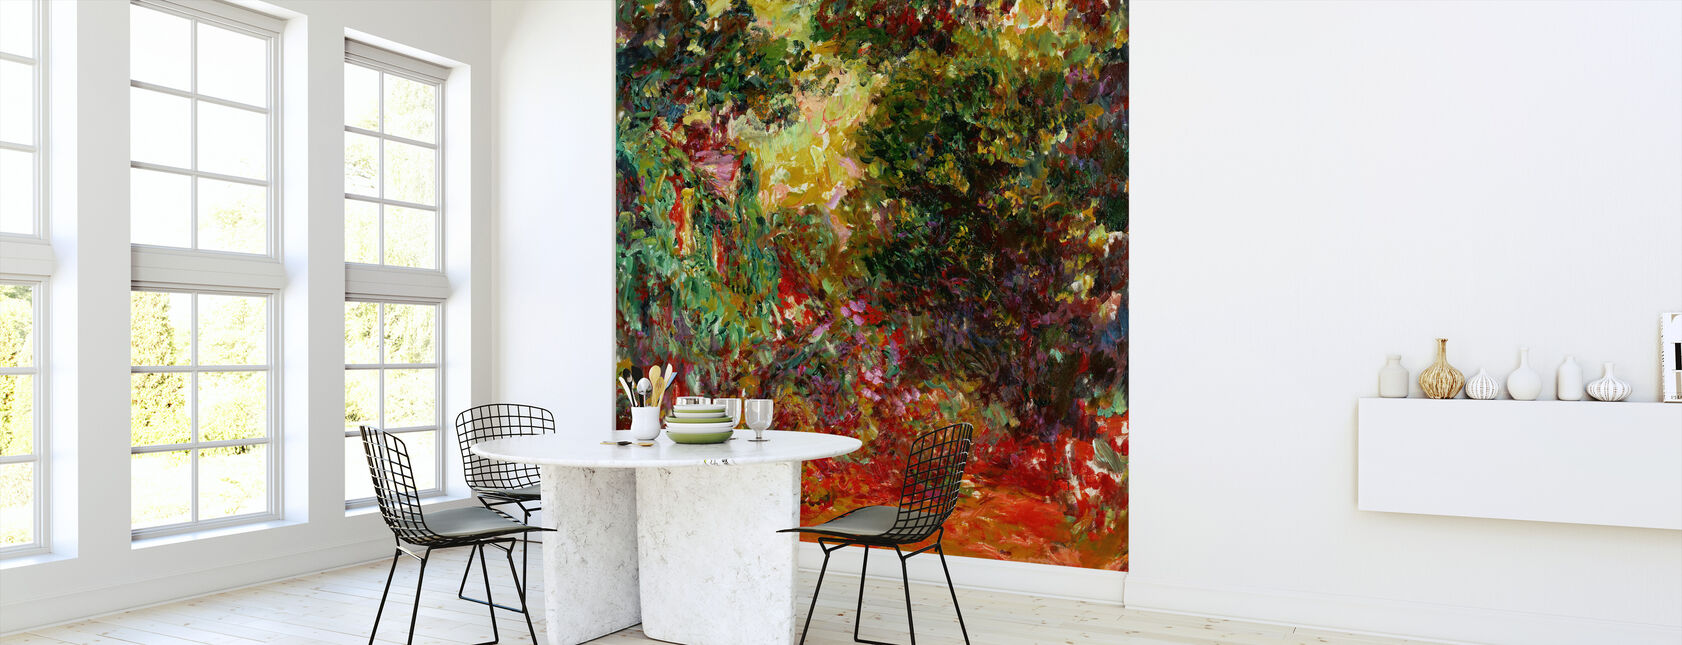 Rose Garden - Claude Monet - Wallpaper - Kitchen